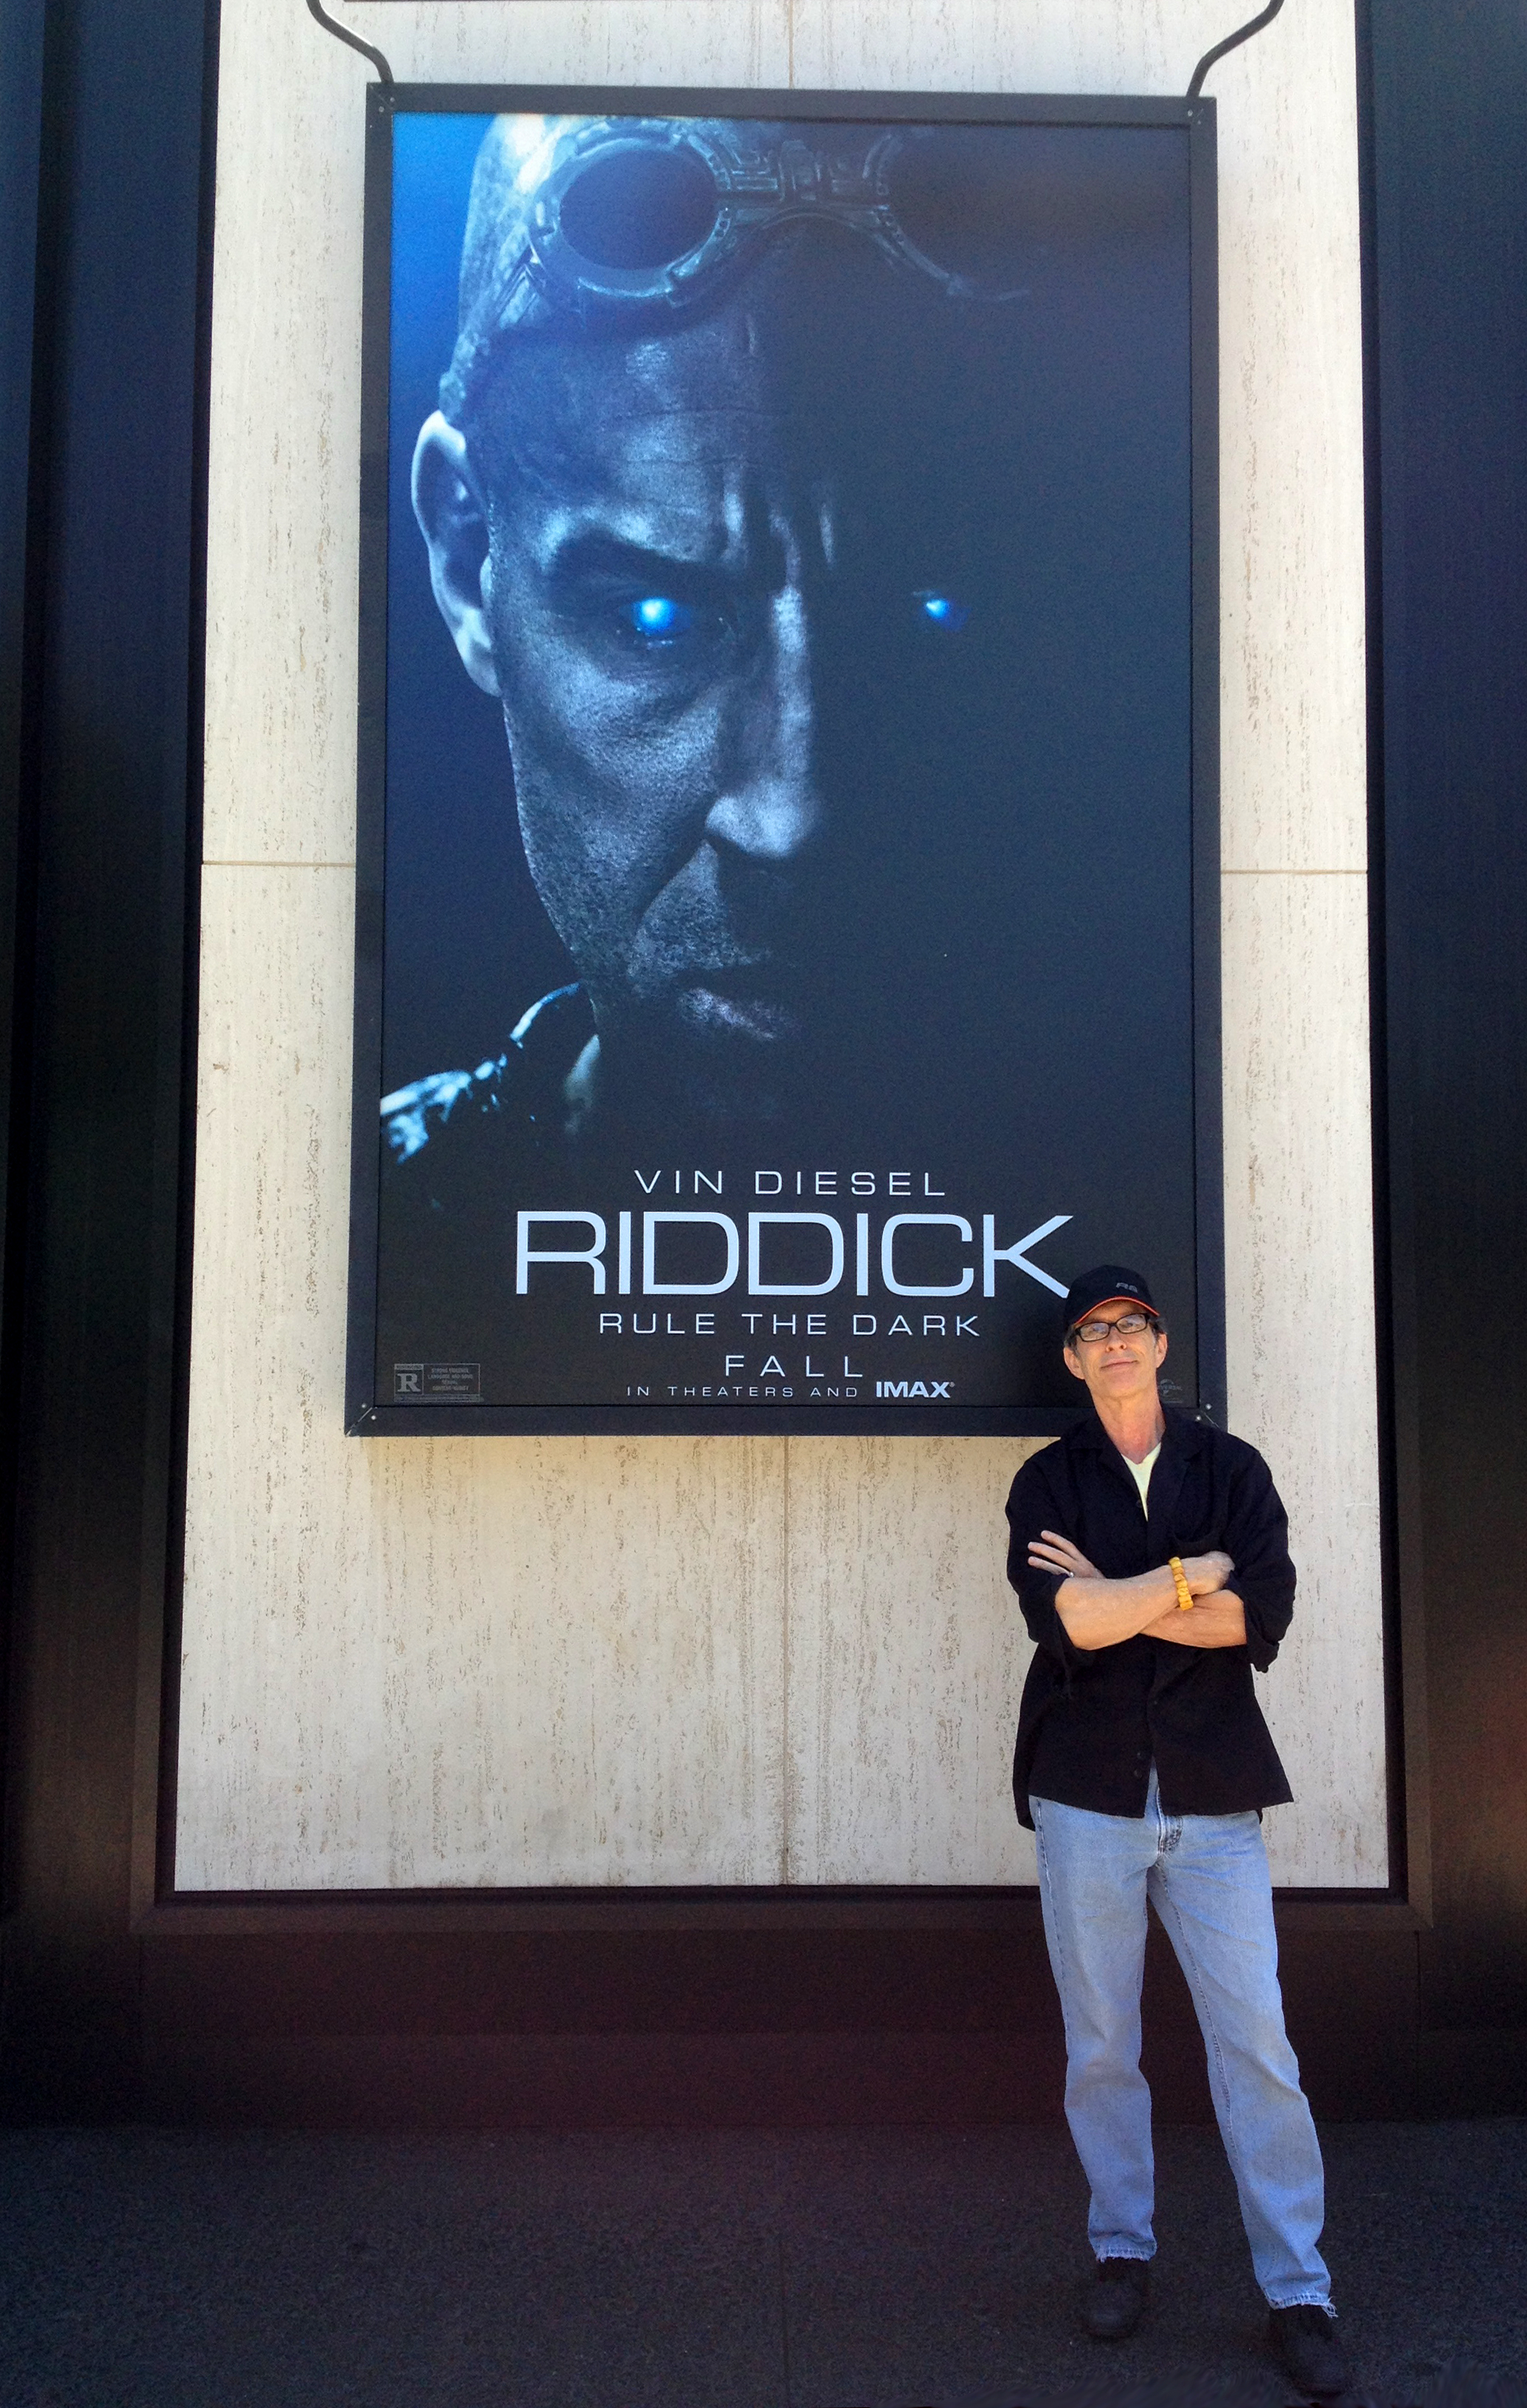 David Twohy on Universal Lot with giant poster of his movie, August 2013